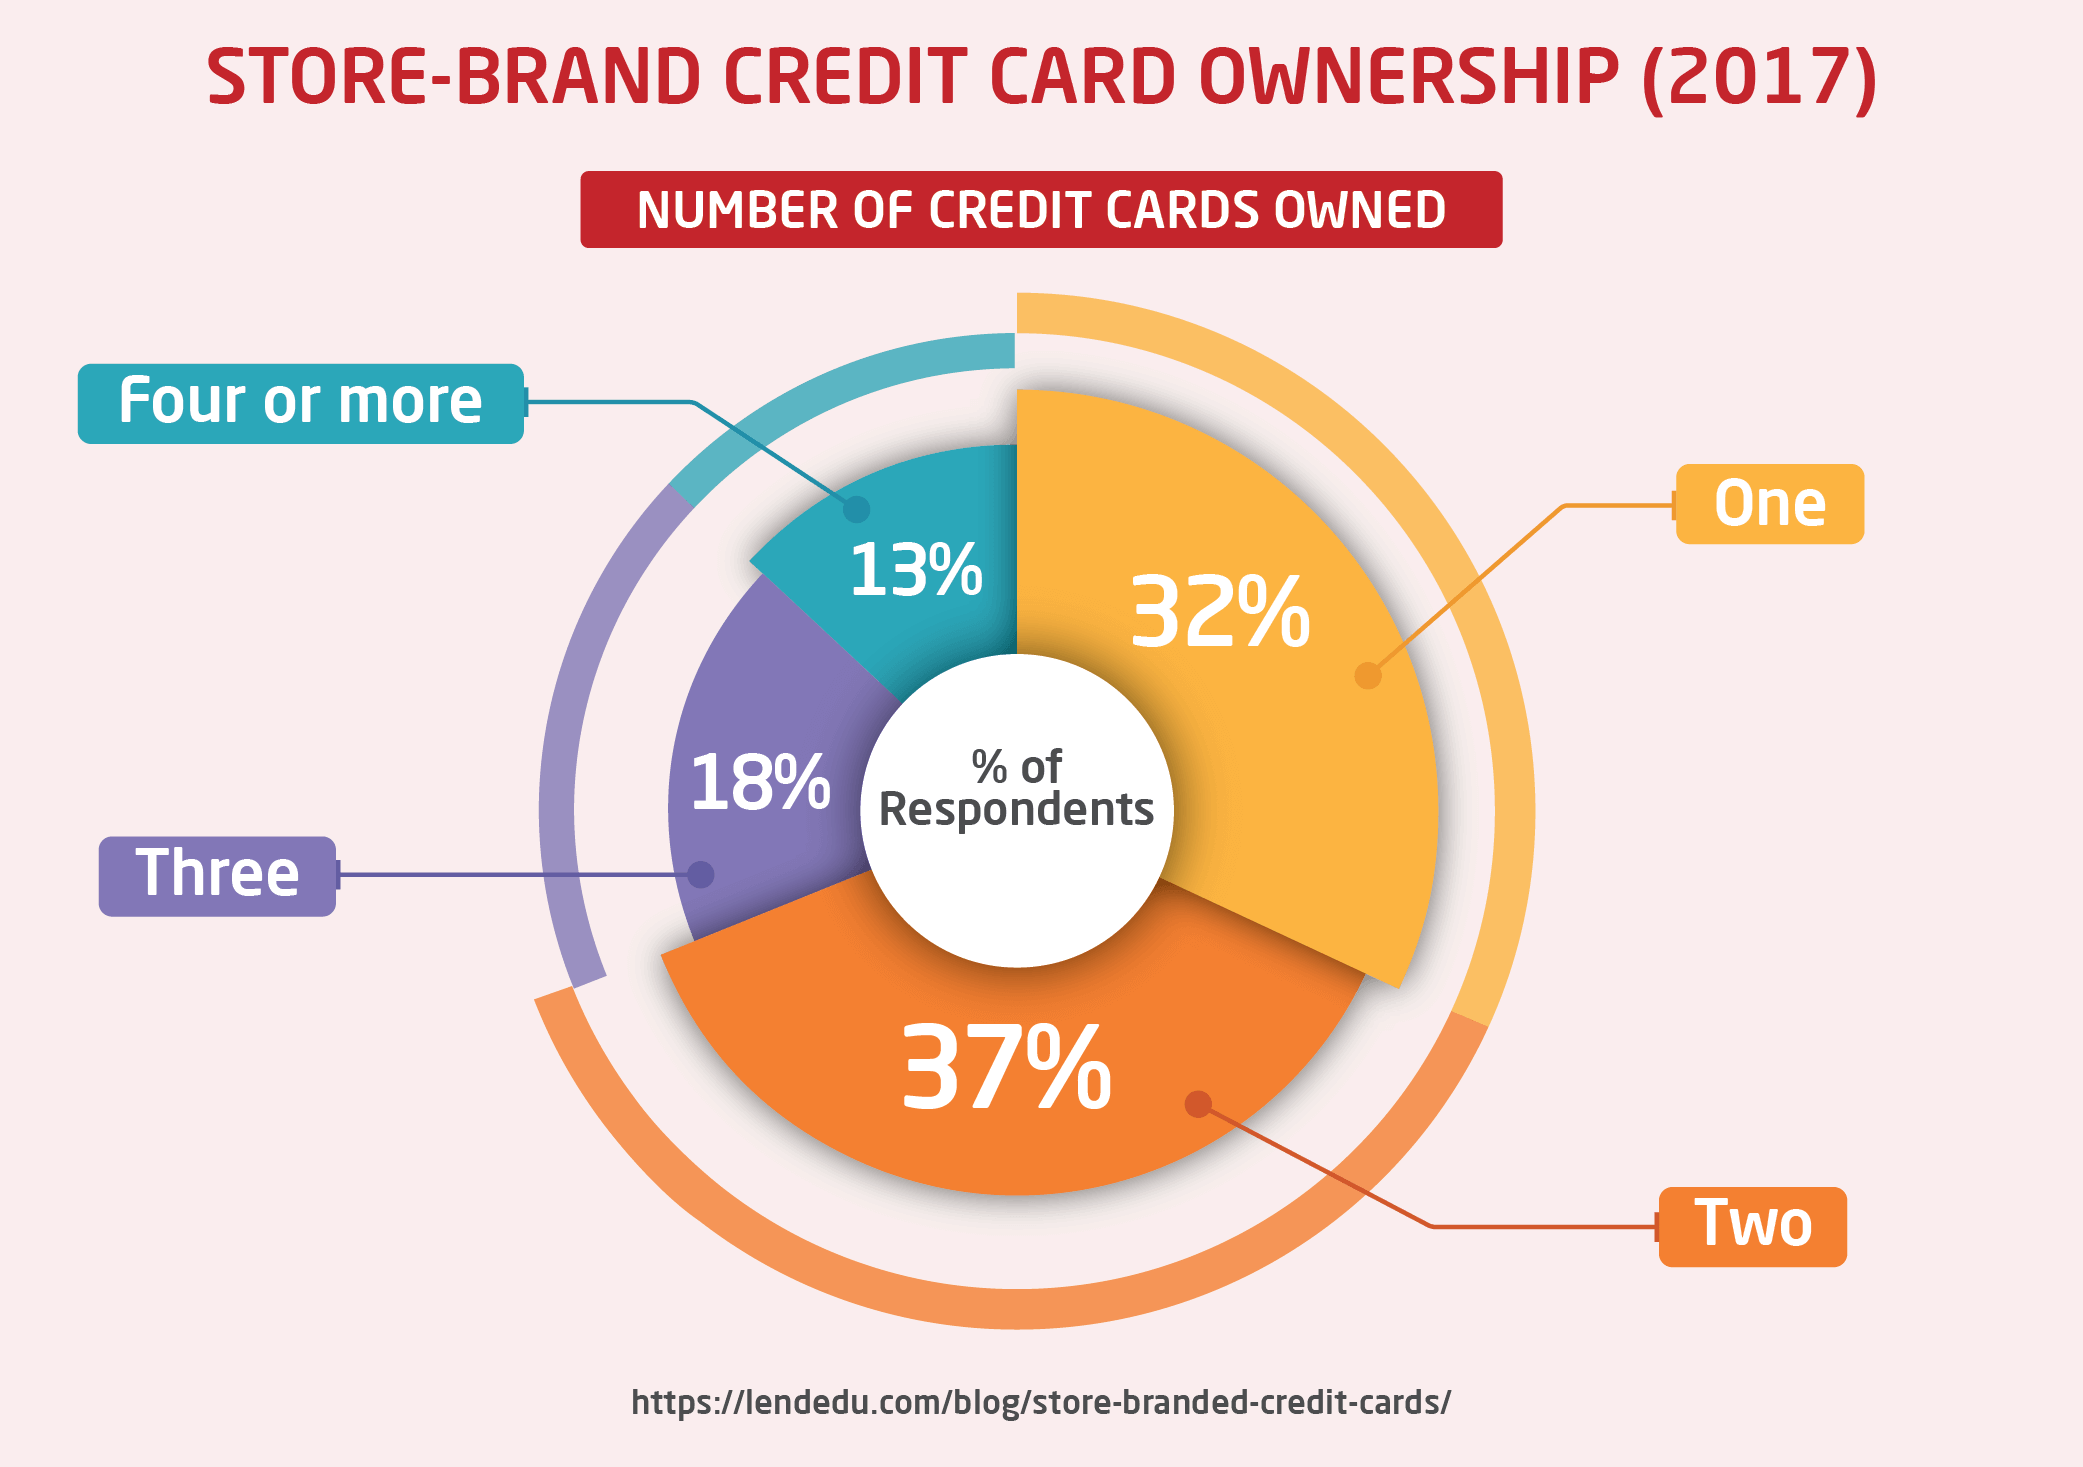 Store-Branded Credit Cards Ownership (2017)